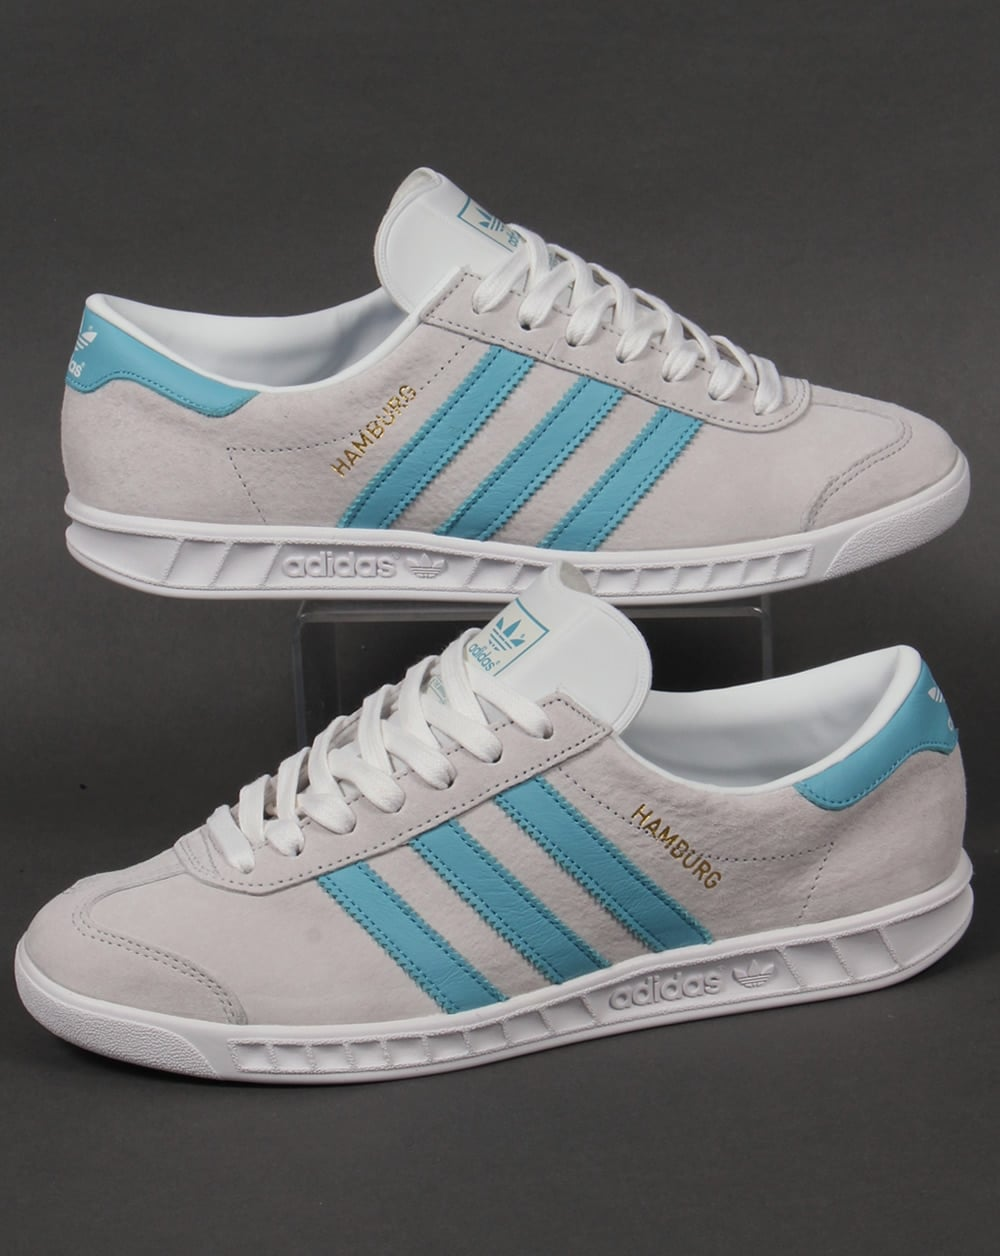 Adidas Original Superstar Rose Crystals White trainers uk